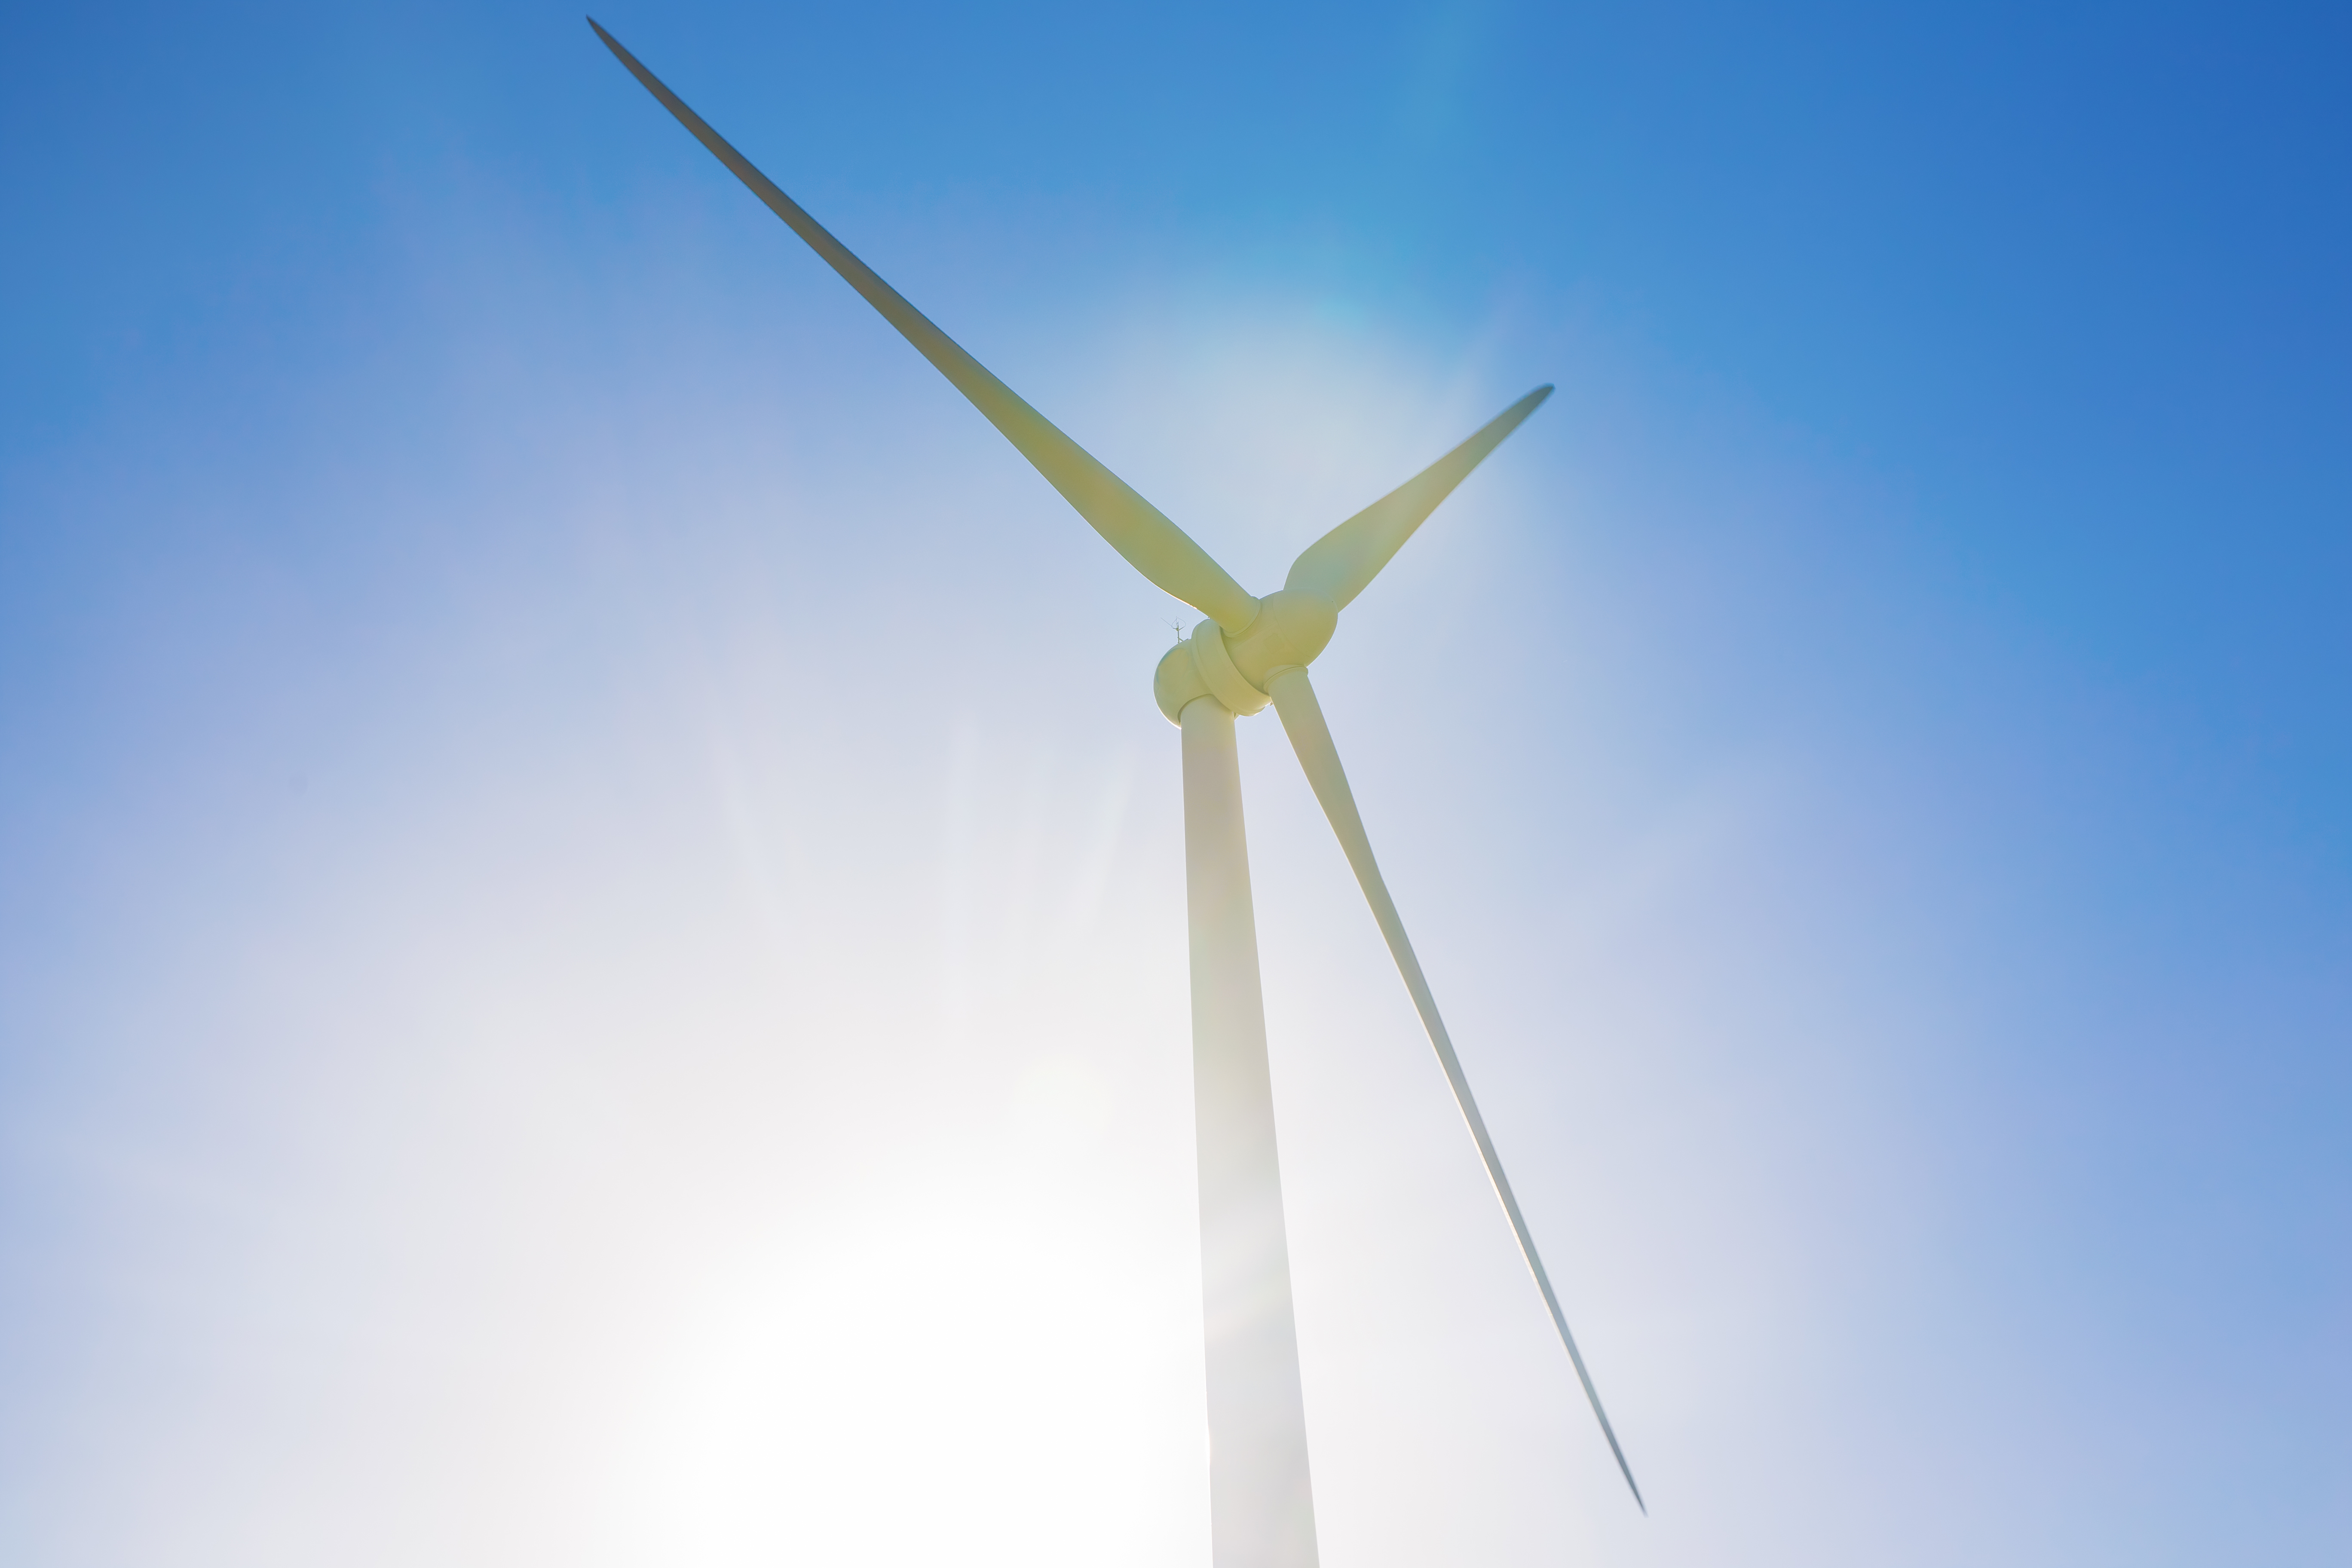 https://watt.co.uk/wp-content/uploads/2020/04/powerful-and-ecological-energy-concept-windmill-fo-PYLKRPD.jpg